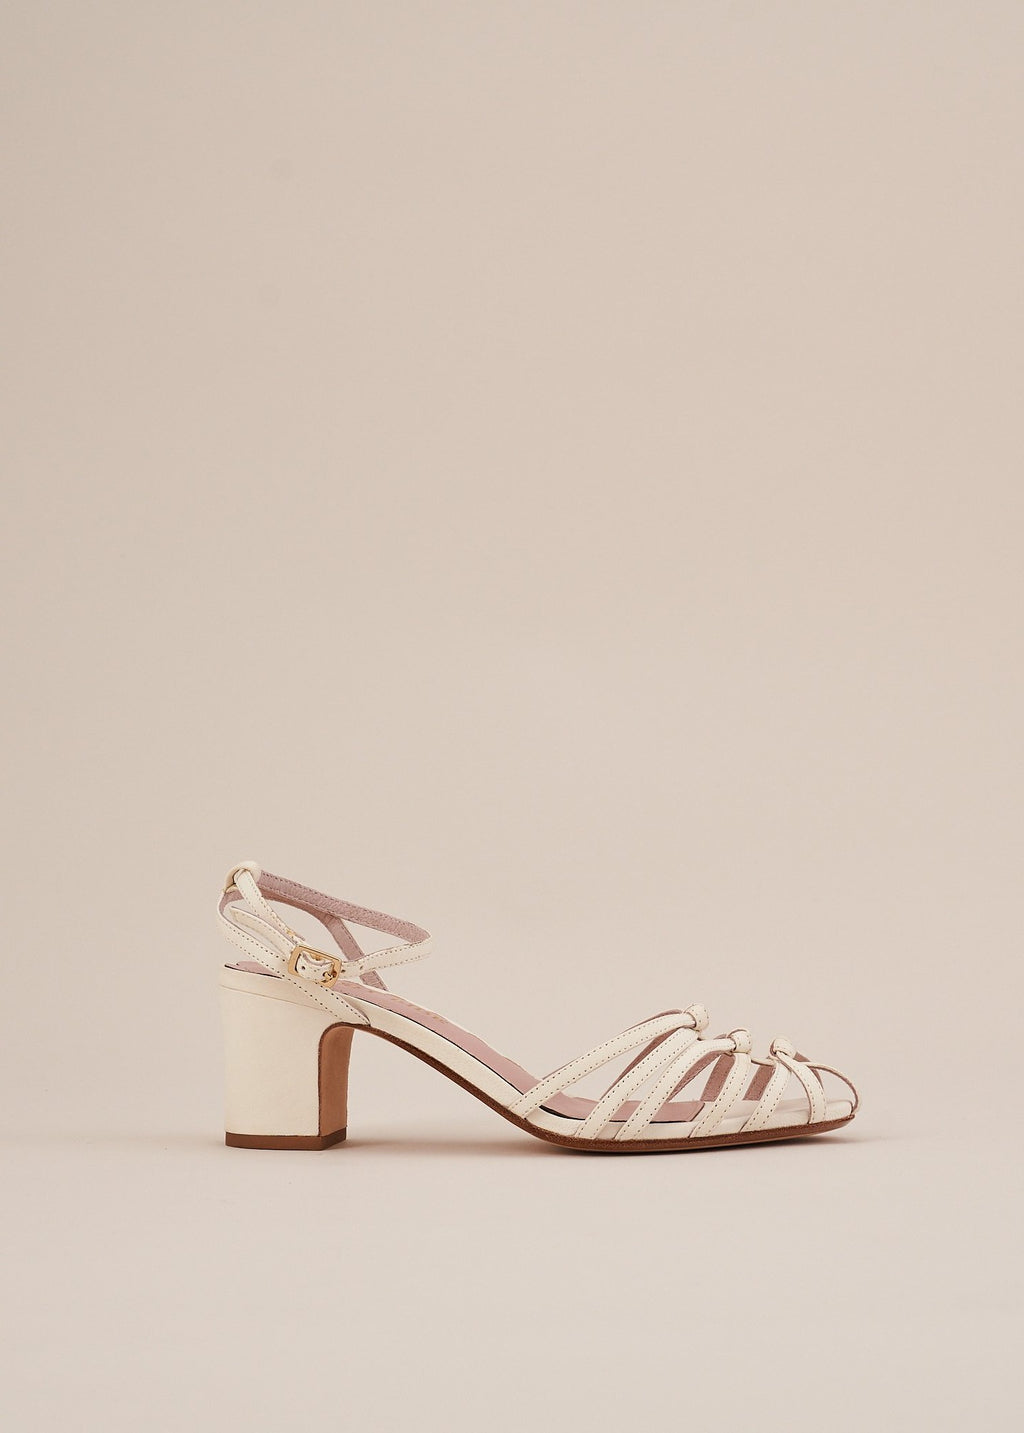 Lois by Miss L Fire is a strappy knotted upper sandal in soft white leather by London Designer, Miss L Fire. Perfect bridal wedding bridesmaid sandal. Small batch, ethically produced.